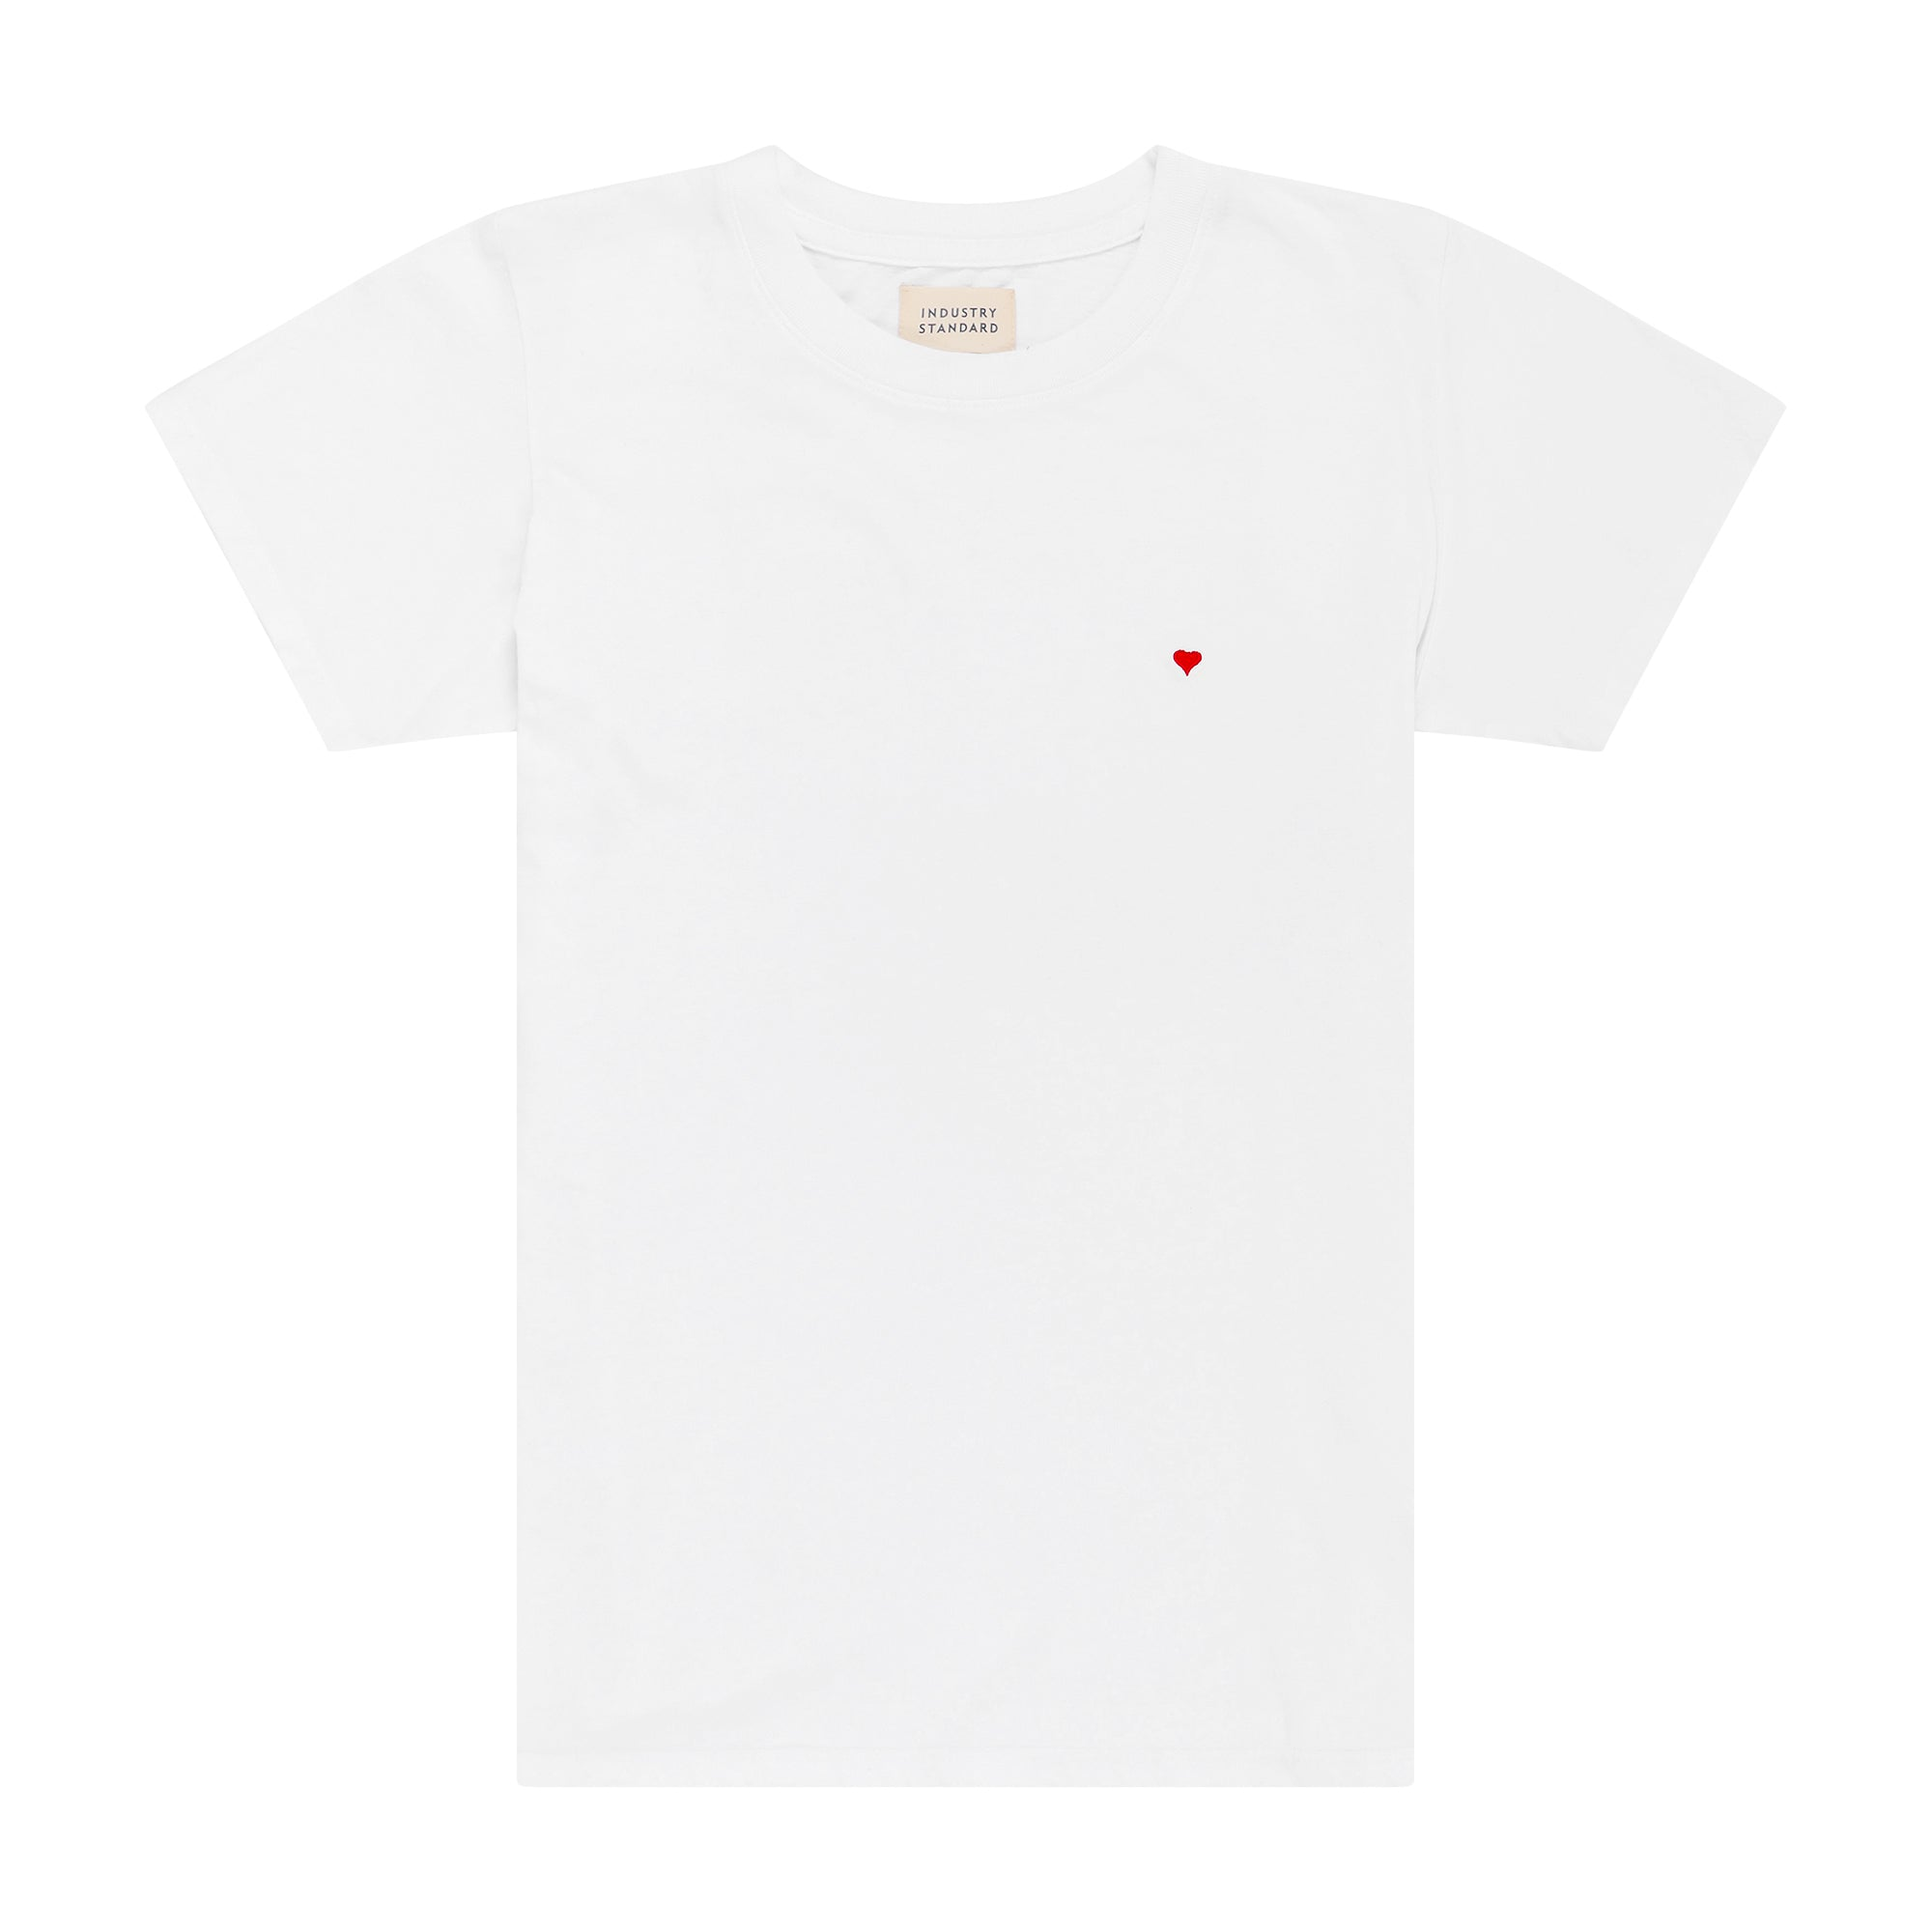 The Maxime Amour Tee